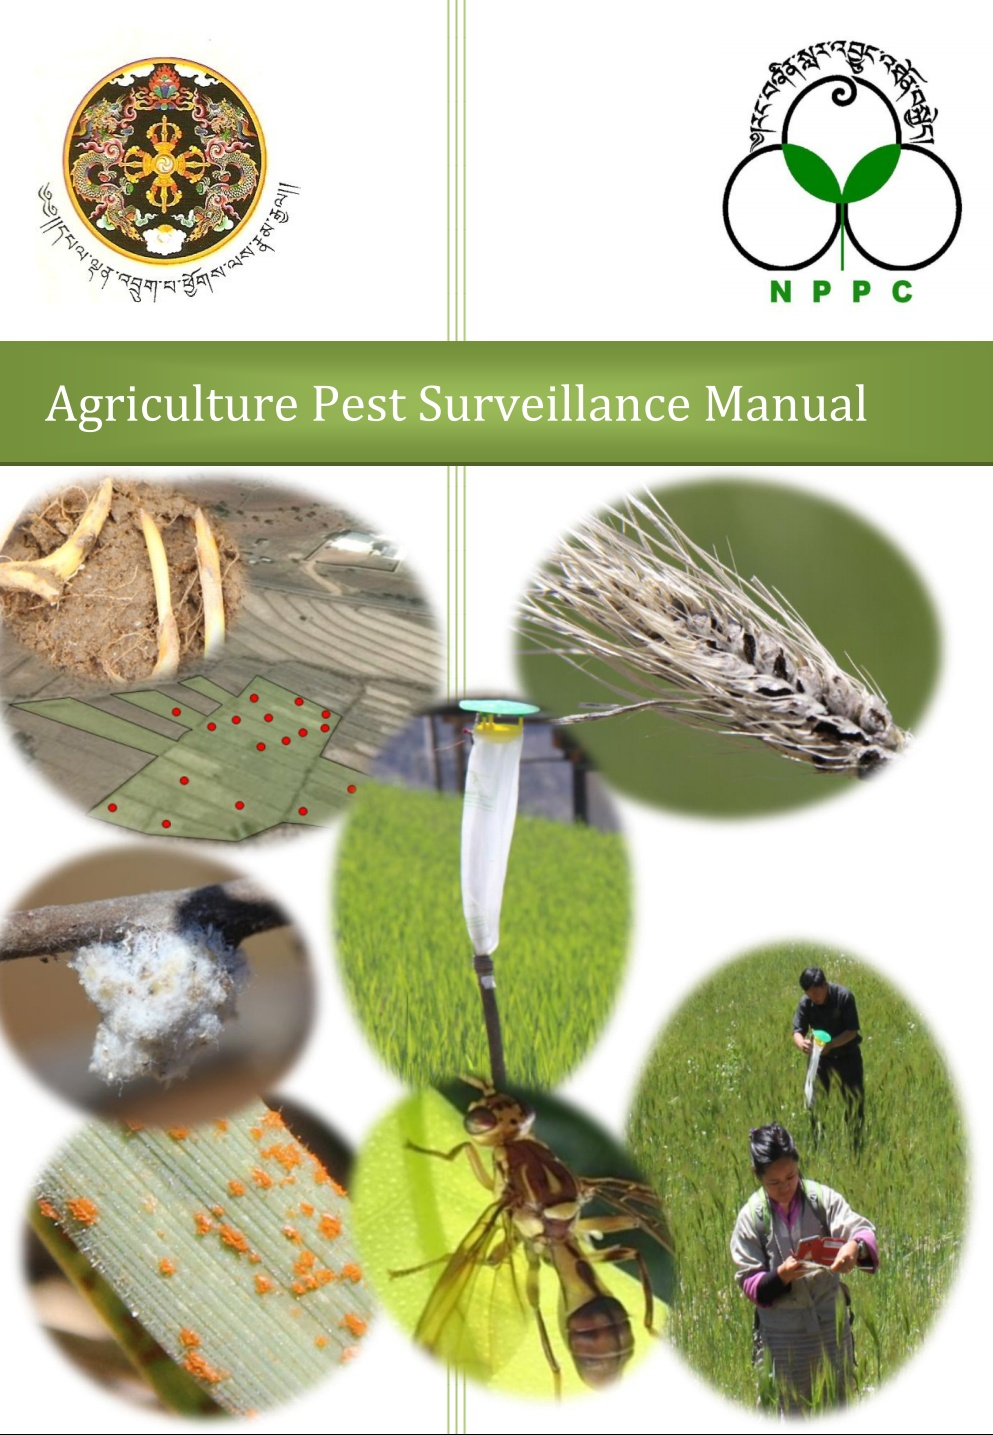 Agriculture Pest Surveillance Manual 2017